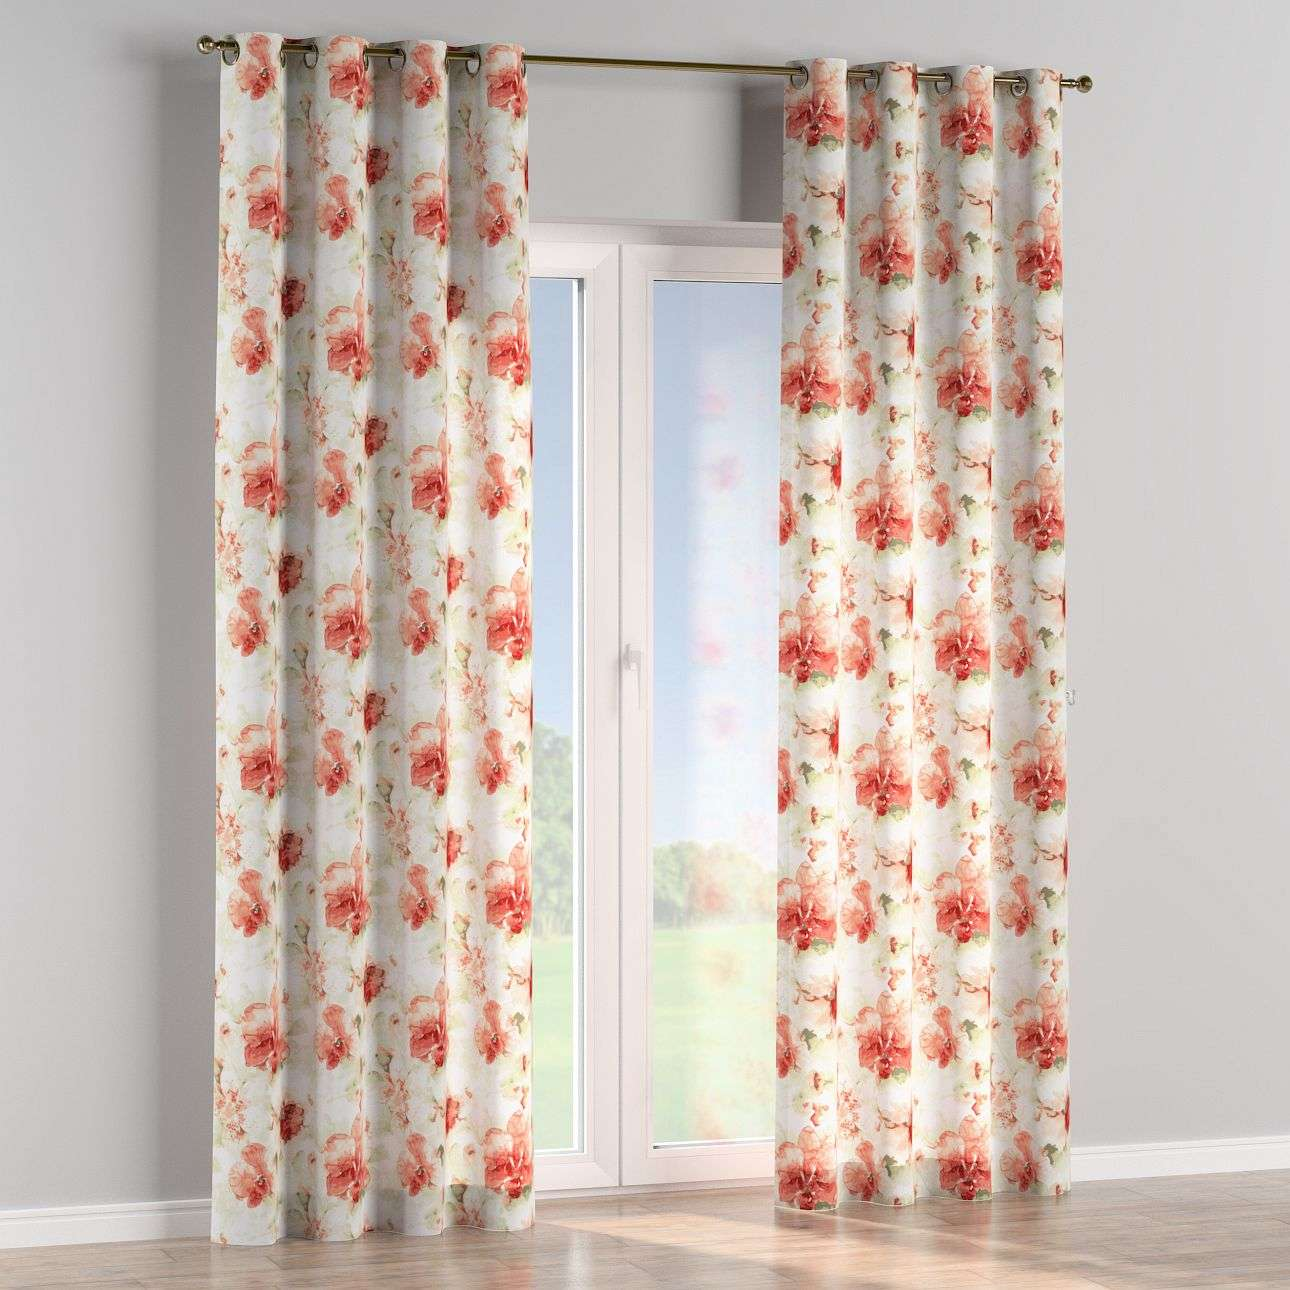 Eyelet curtains 130 x 260 cm (51 x 102 inch) in collection Acapulco, fabric: 141-34